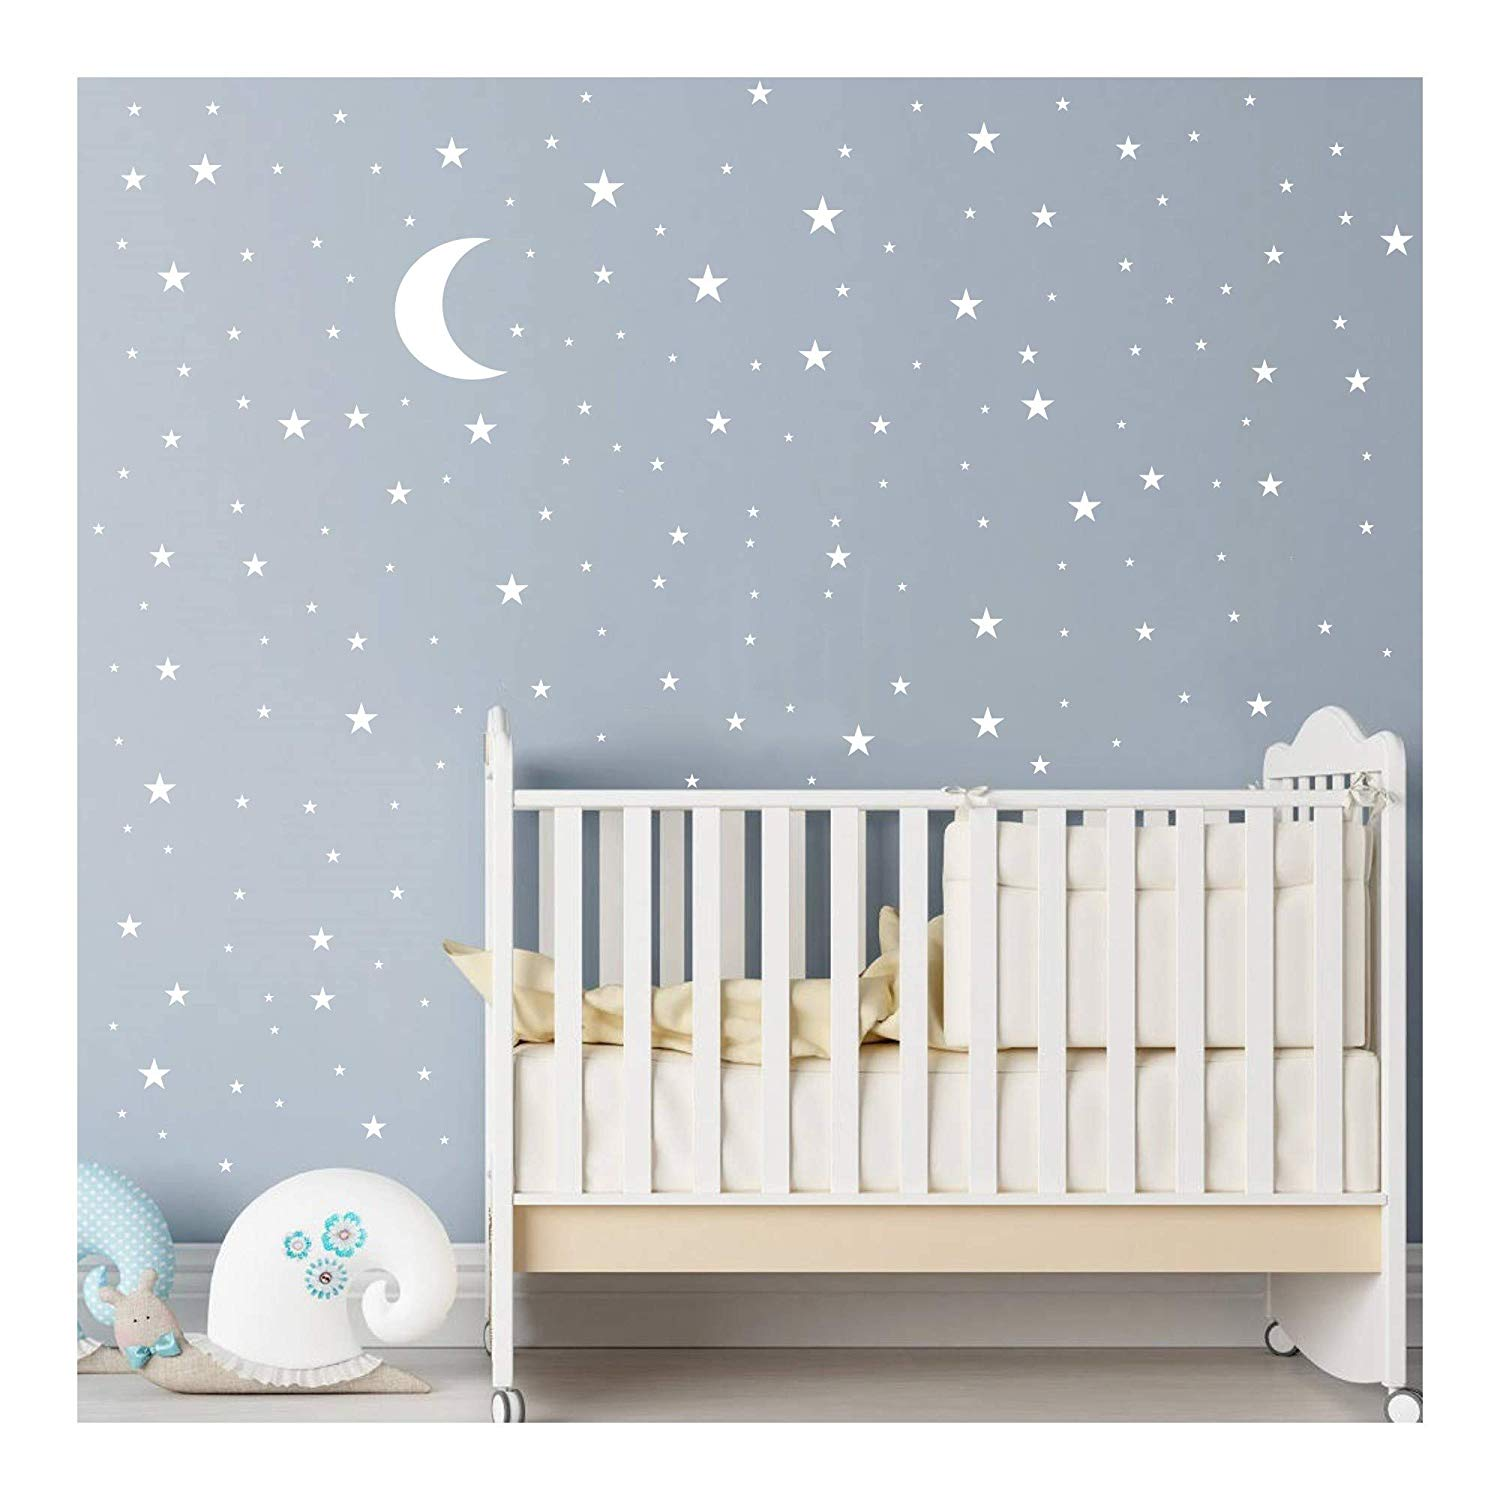 JOYRESIDE Moon and Stars Wall Decal Vinyl Sticker for Kids Boy Girls Baby  Room Decoration Good Night Nursery Wall Decor Home House Bedroom Design  YMX16